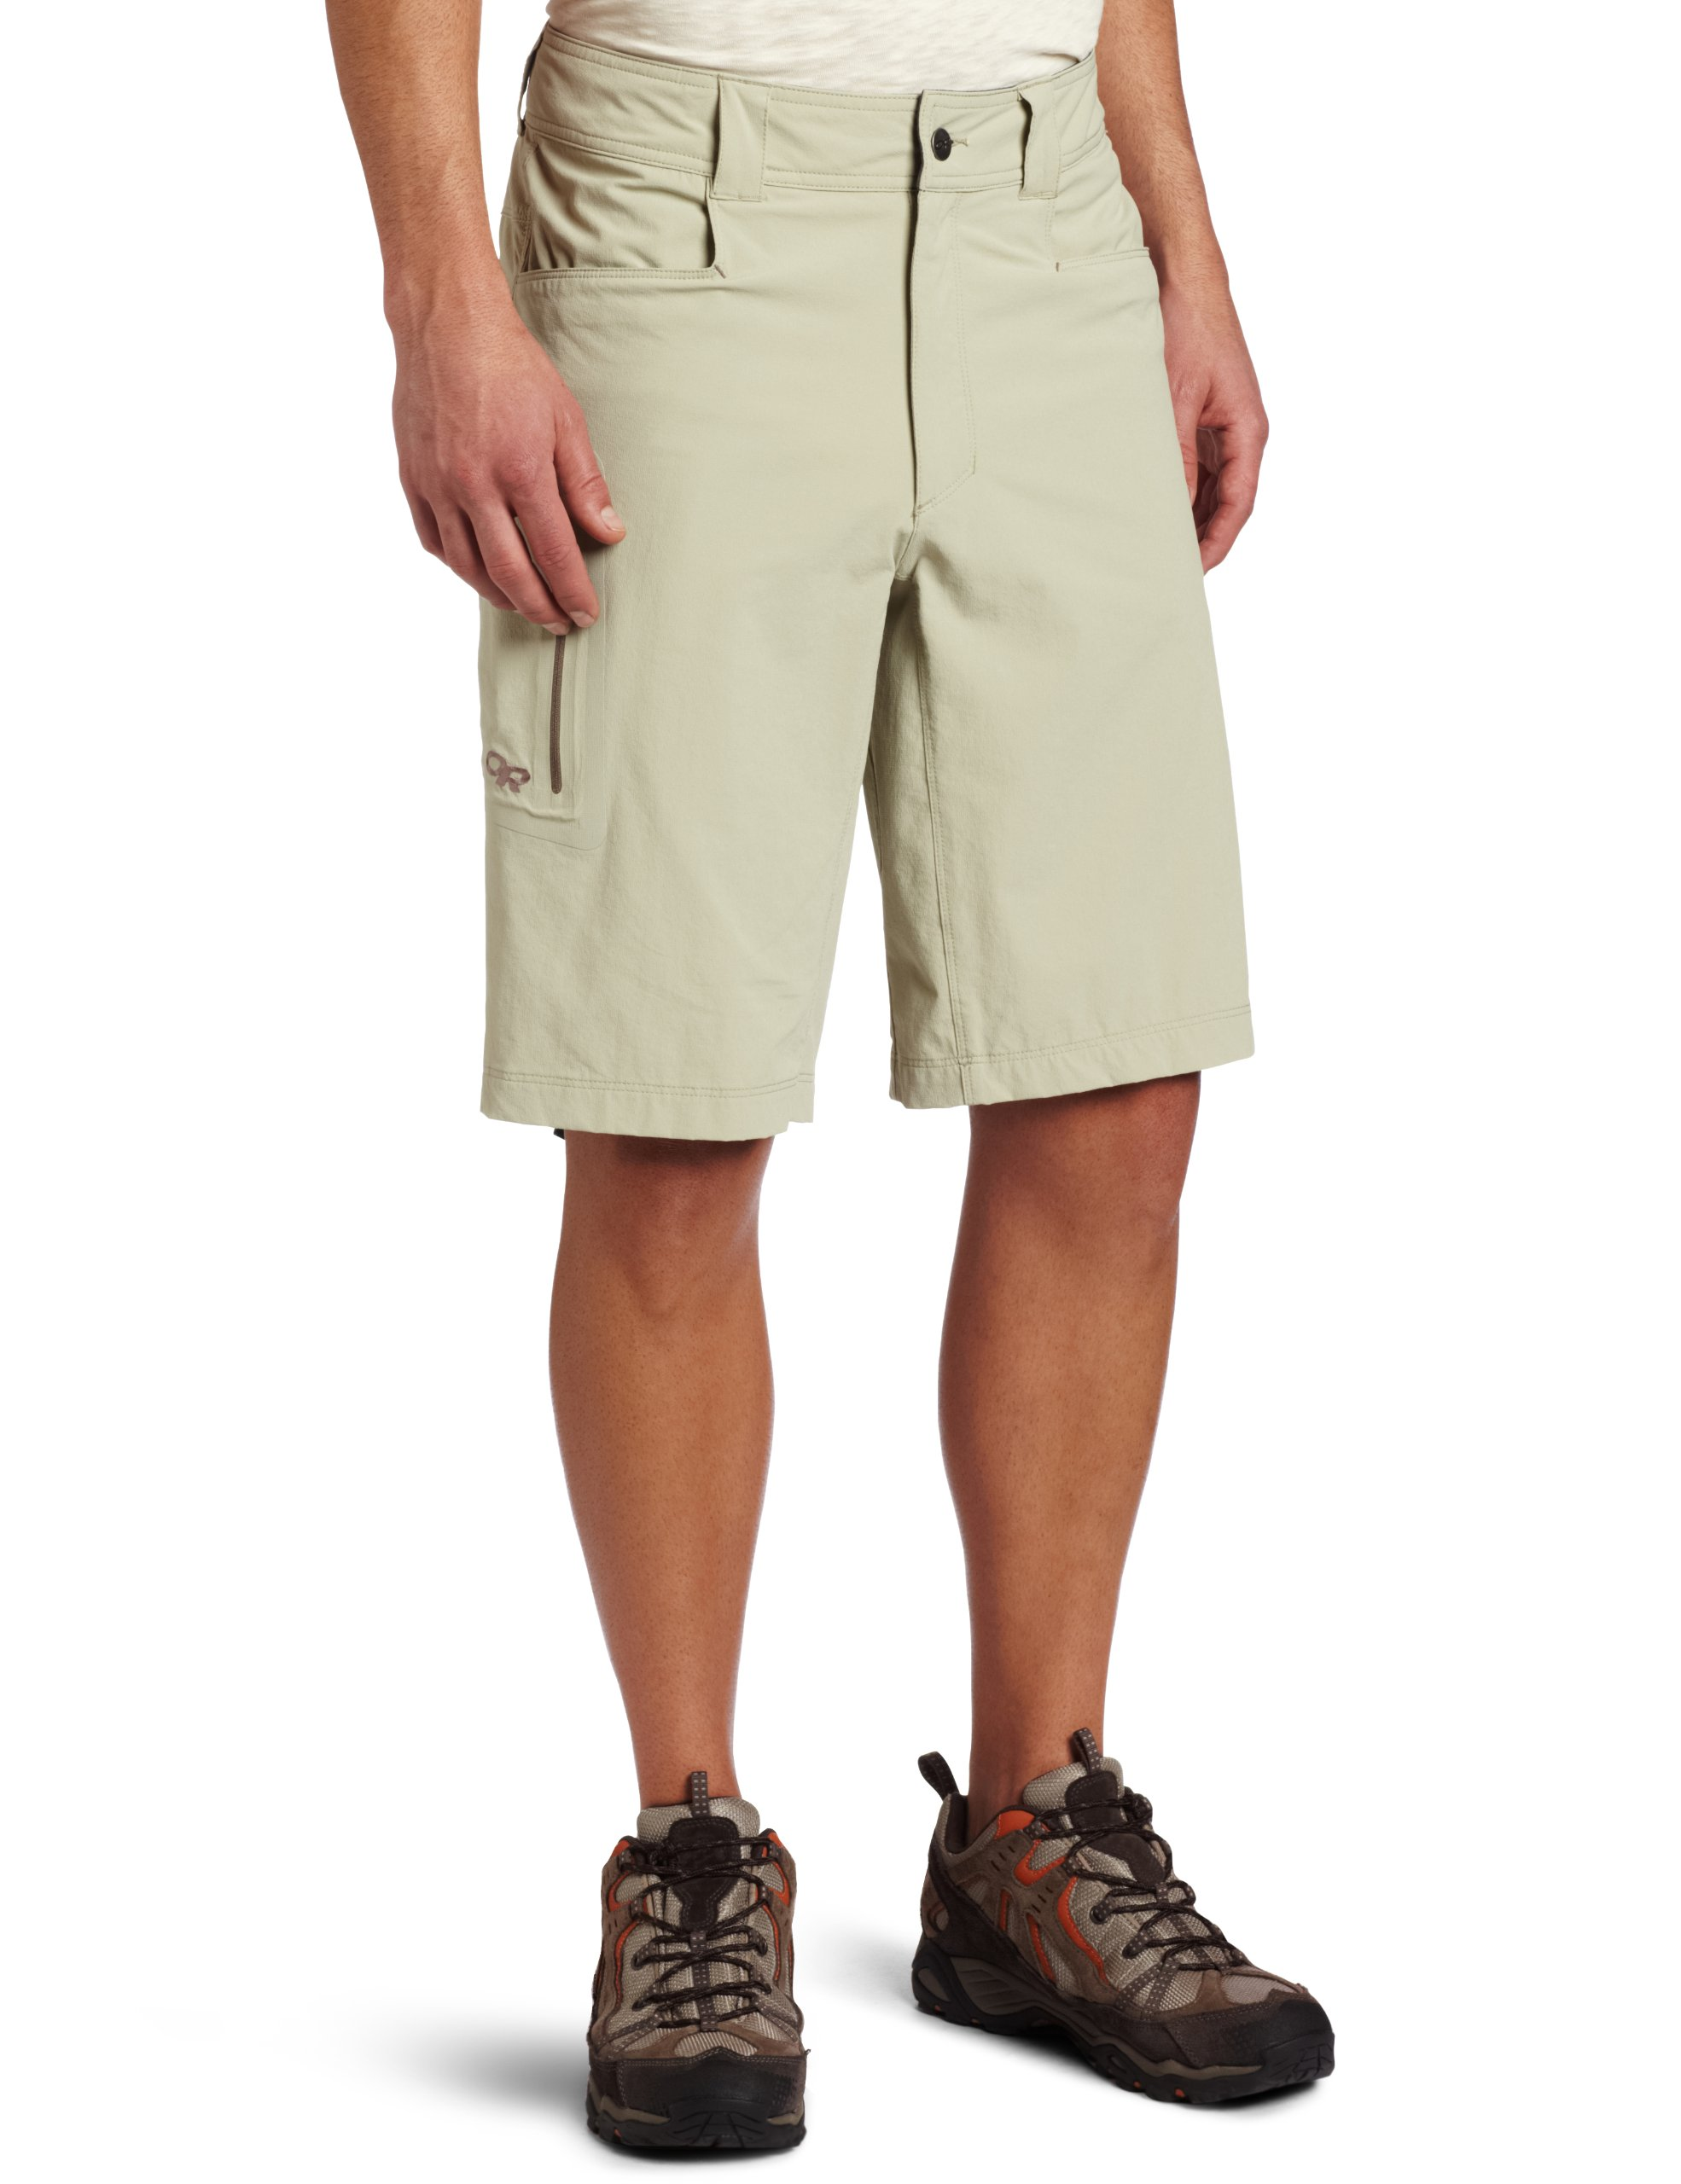 Outdoor Research Men's Ferrosi 12'' Shorts, Cairn, 30 by Outdoor Research